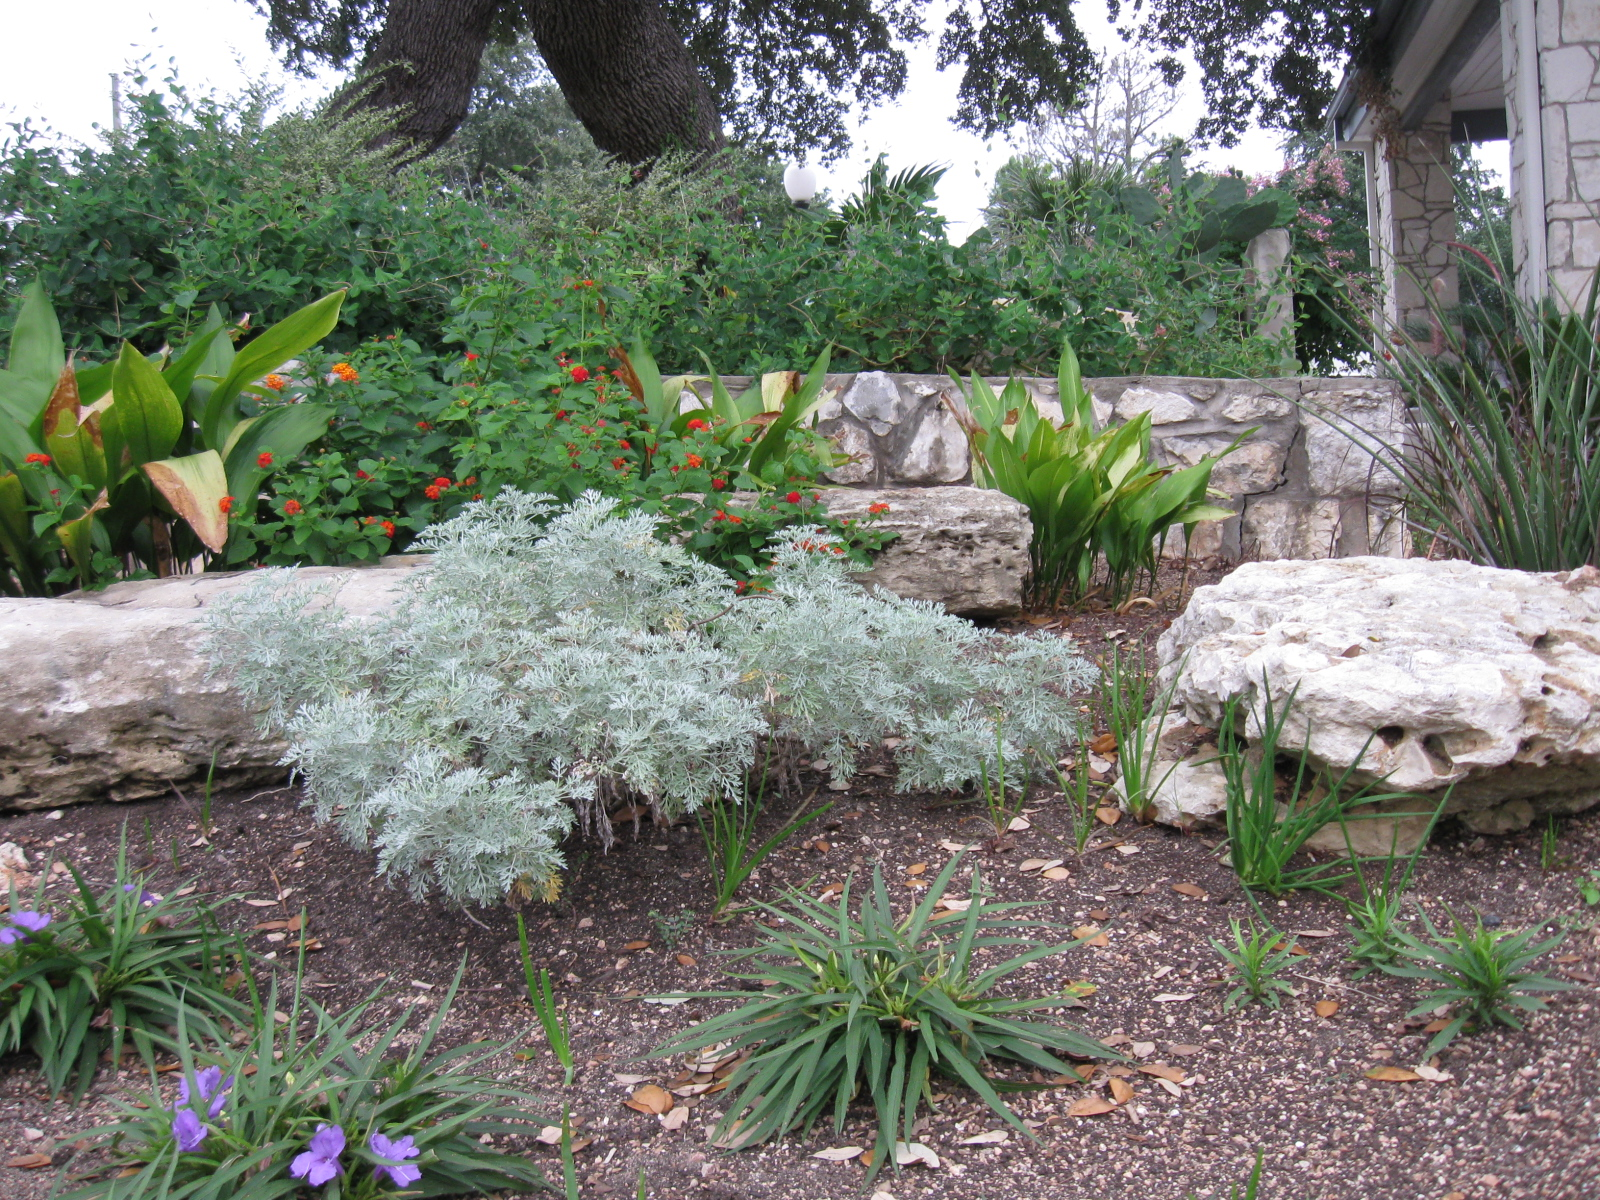 A Garden In Castroville, Texas. The Open Space Between The Plants Will Take  Less Water. Itu0027s Not A Houston, Texas Look, Is It? Will Our Houston Azaleas  And ...